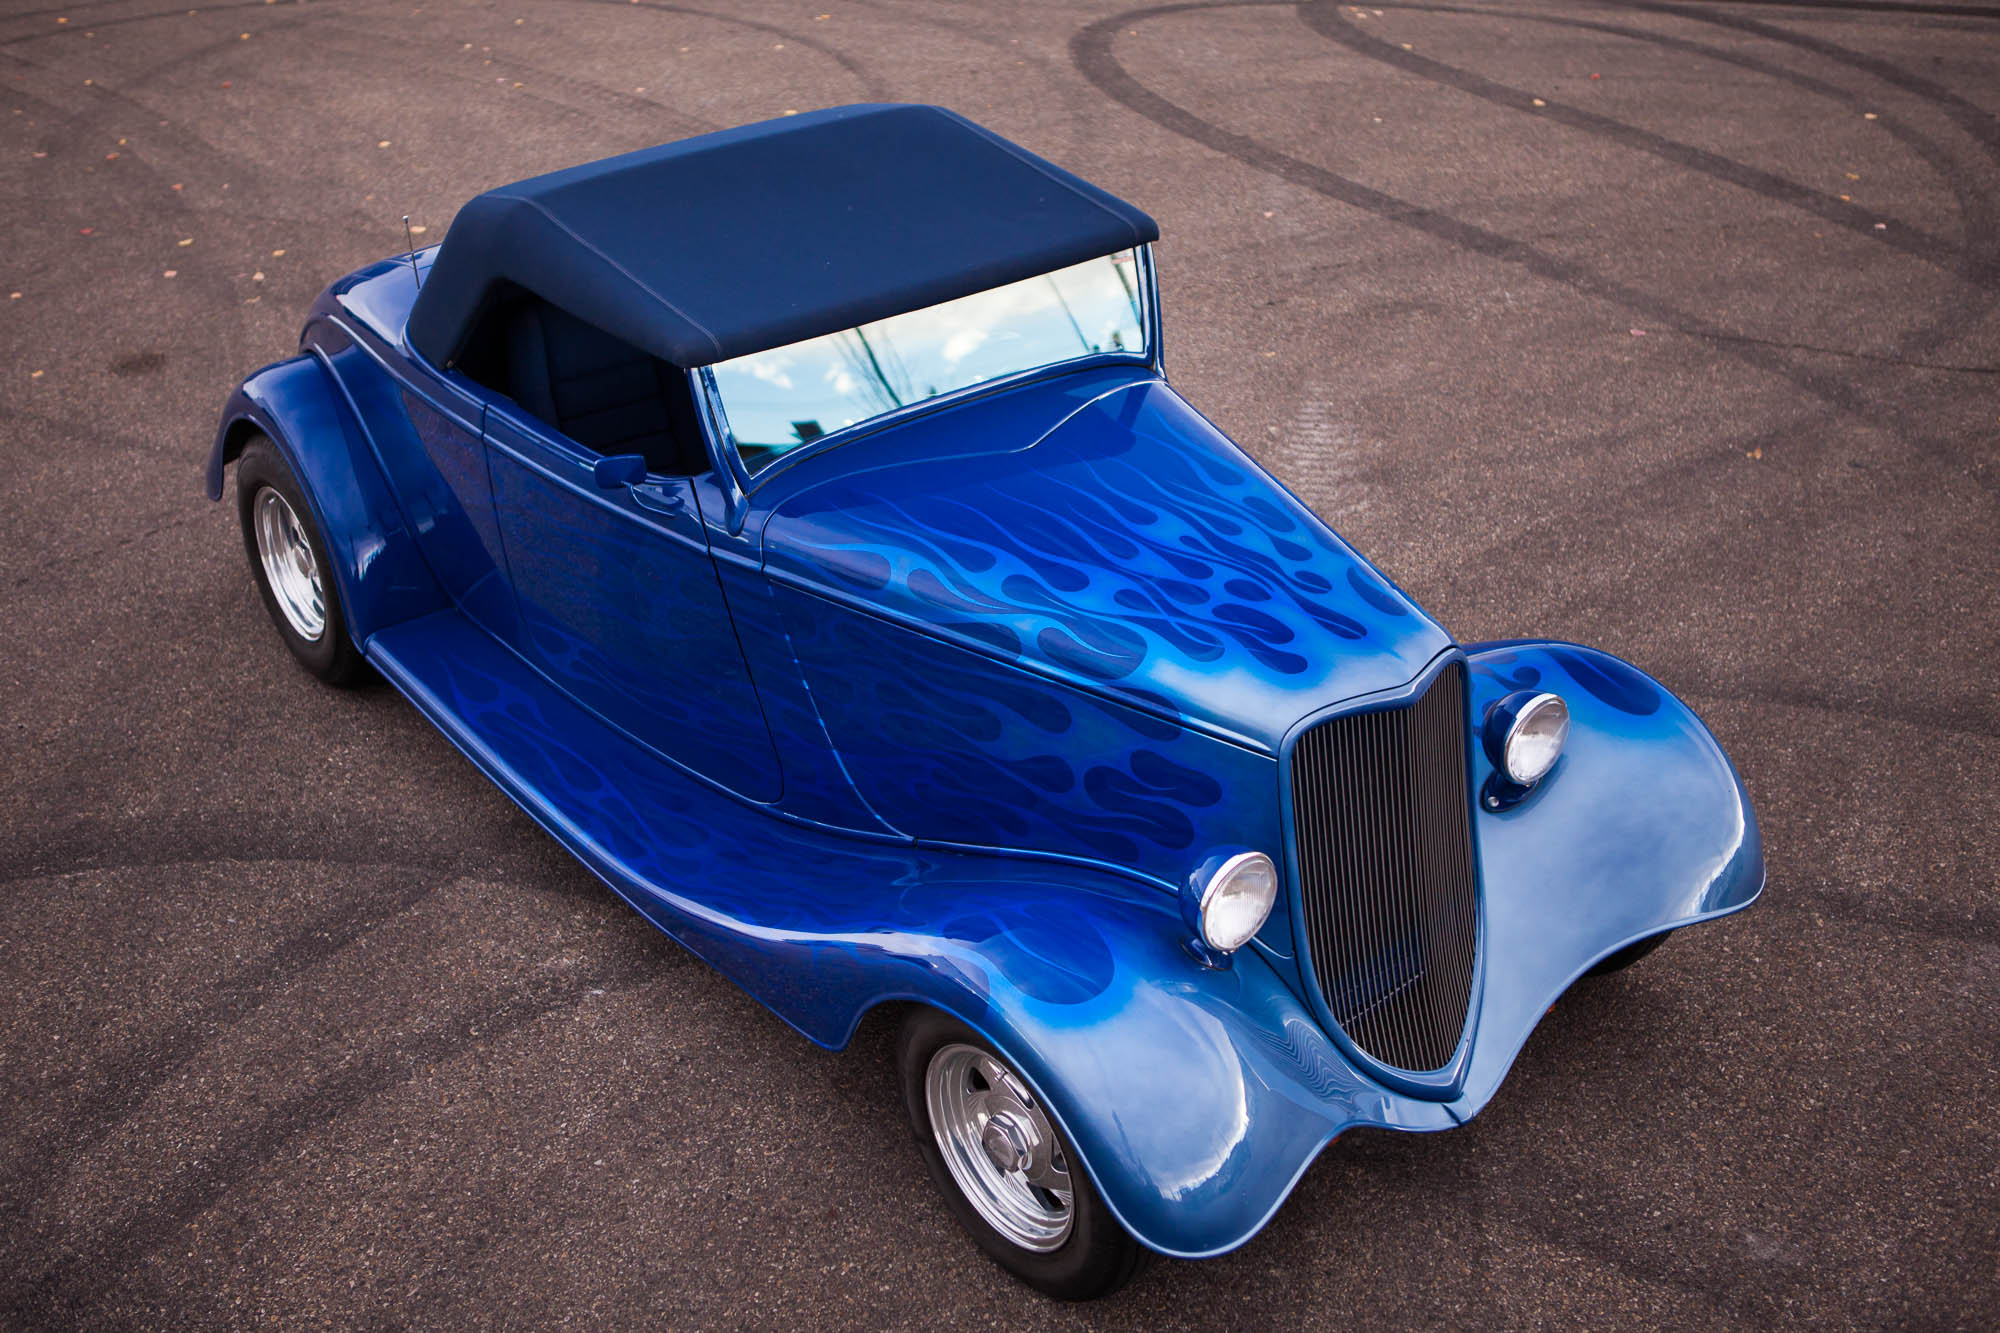 What Is Transmission >> 1933 Full-Fender Ford Roadster - For Sale - The Iron Garage